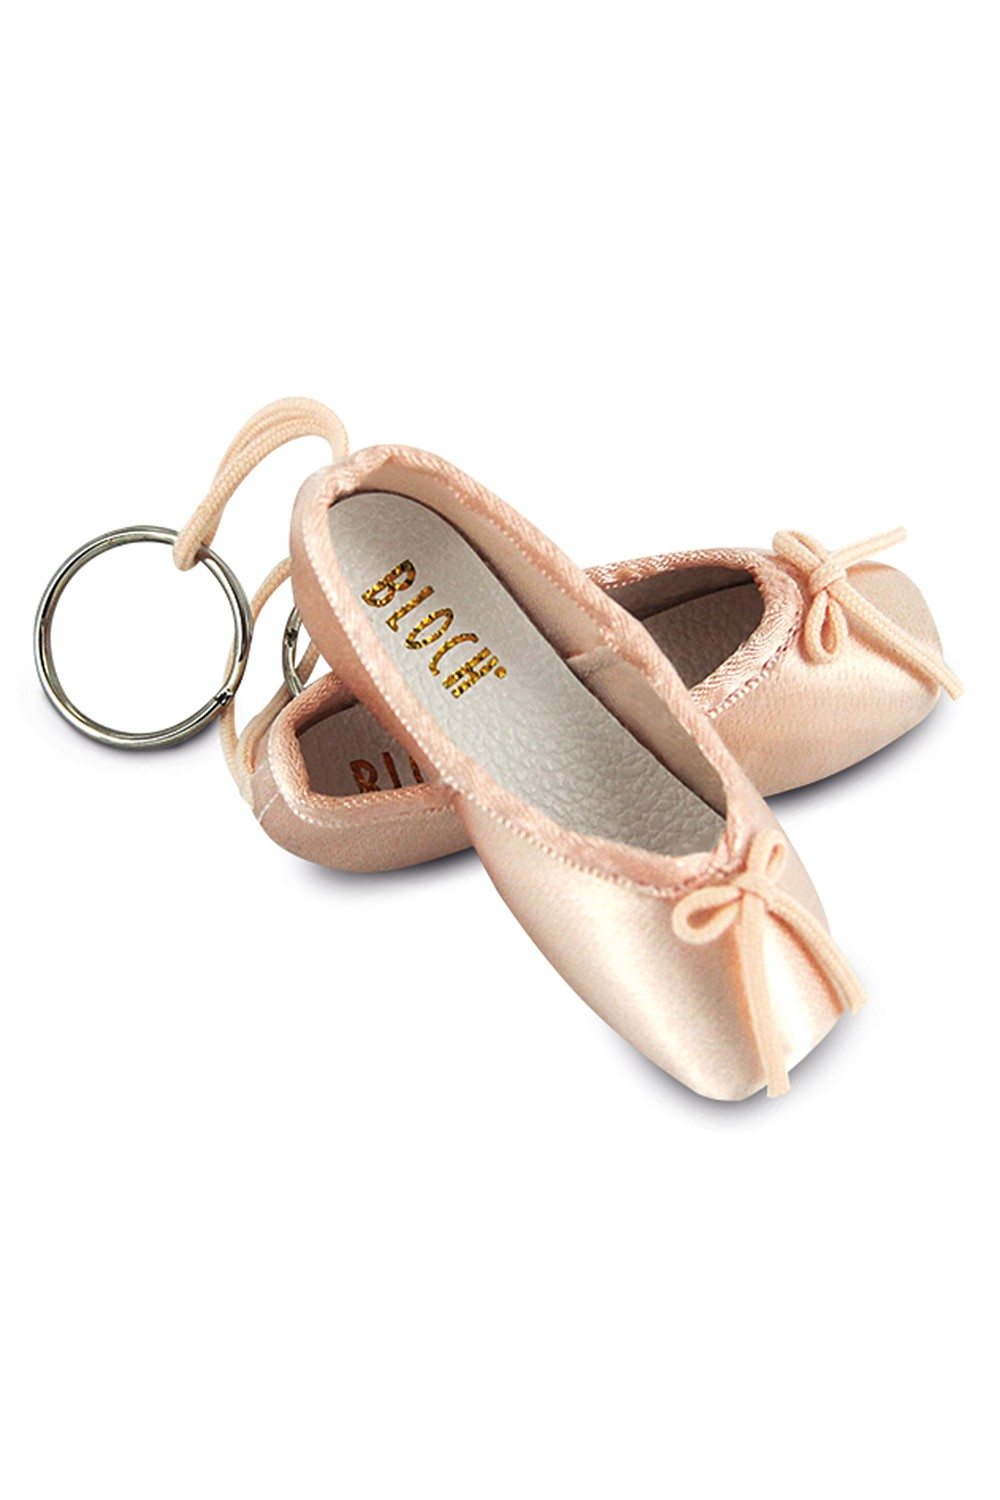 Mini Pointe Shoe Pack Dance Shoes Accessories